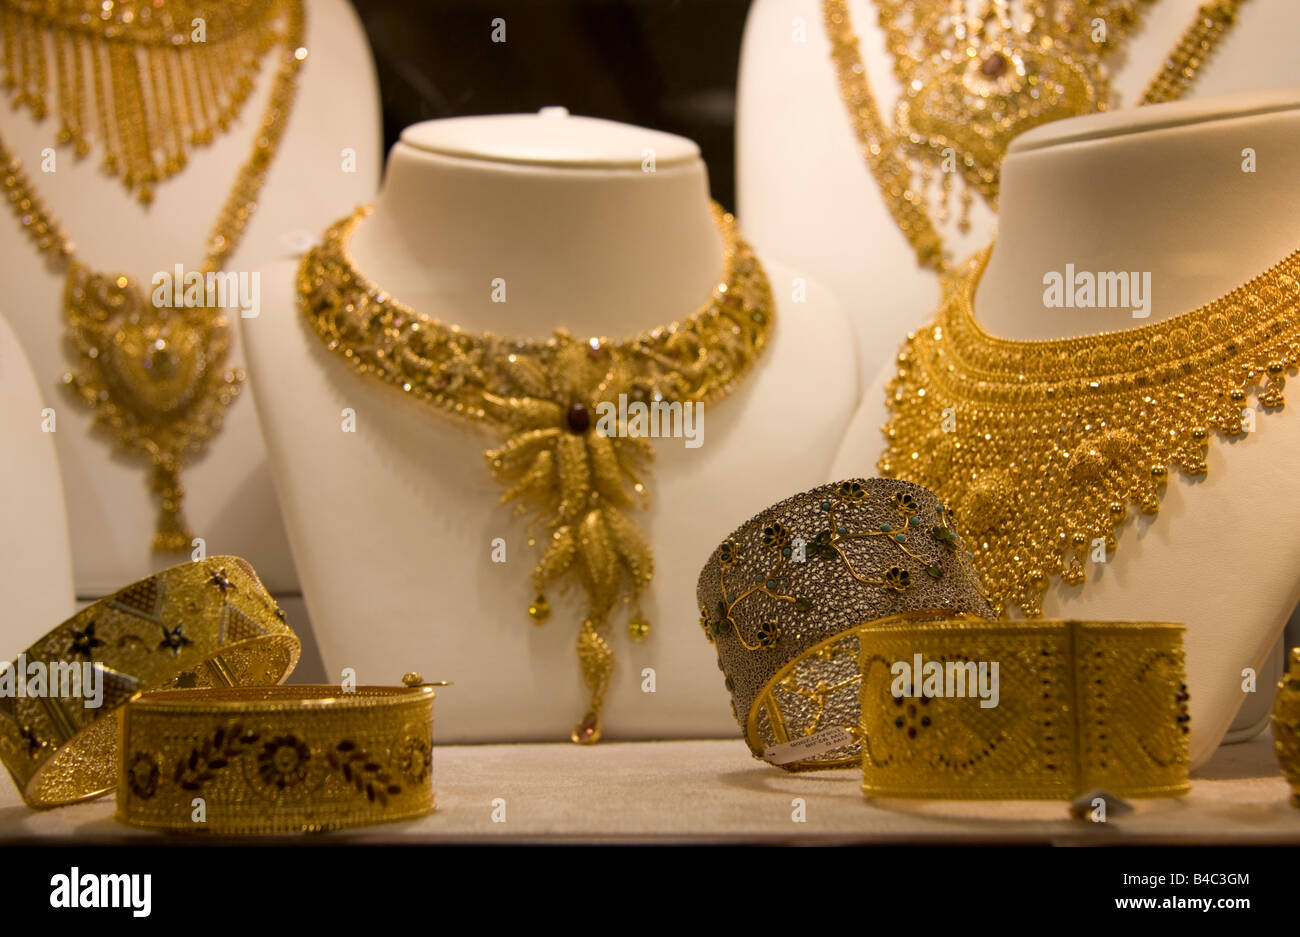 Gold Necklace Dubai Stock Photos Gold Necklace Dubai Stock Images